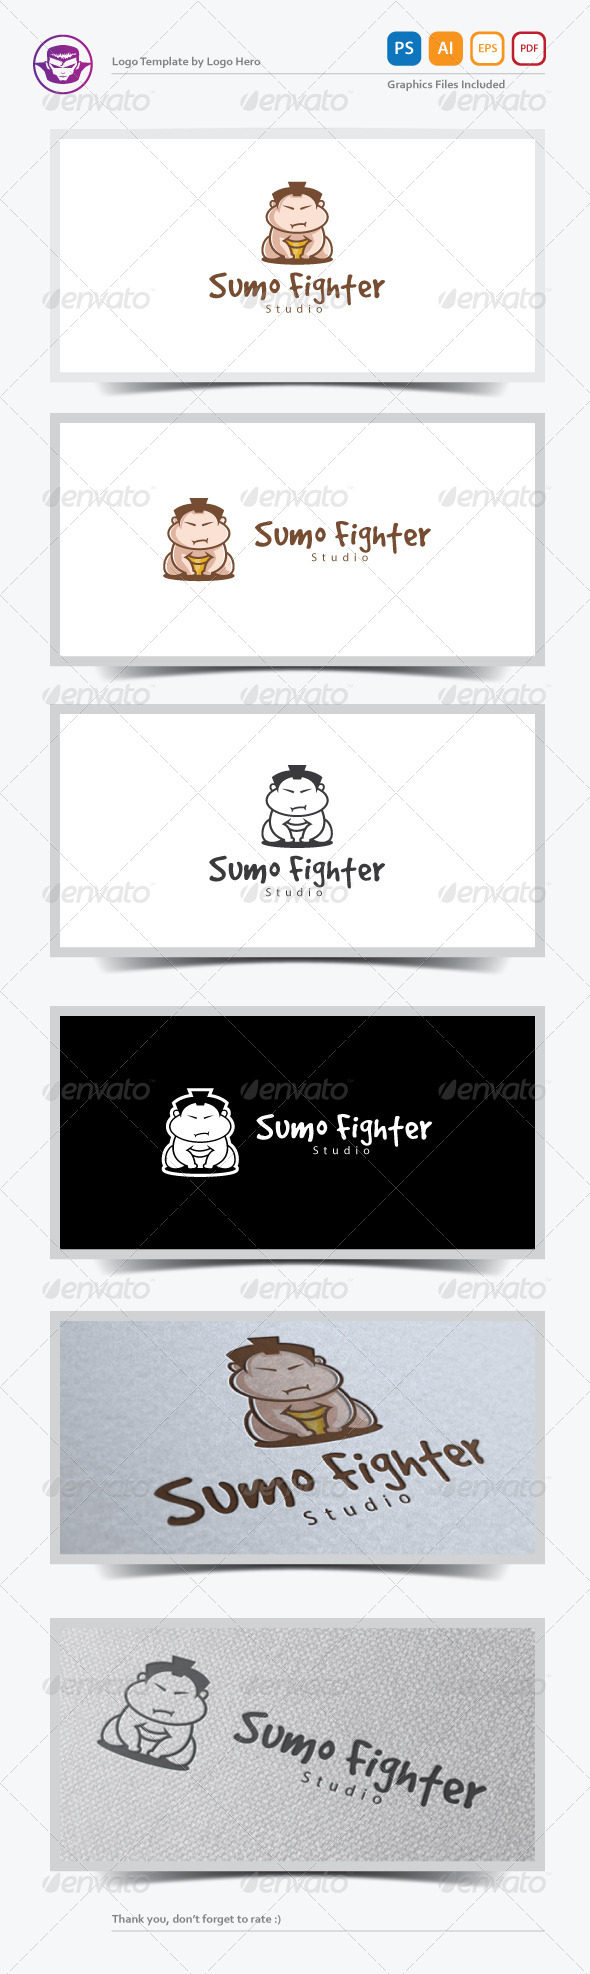 GraphicRiver Sumo Fighter Logo Template 7228932